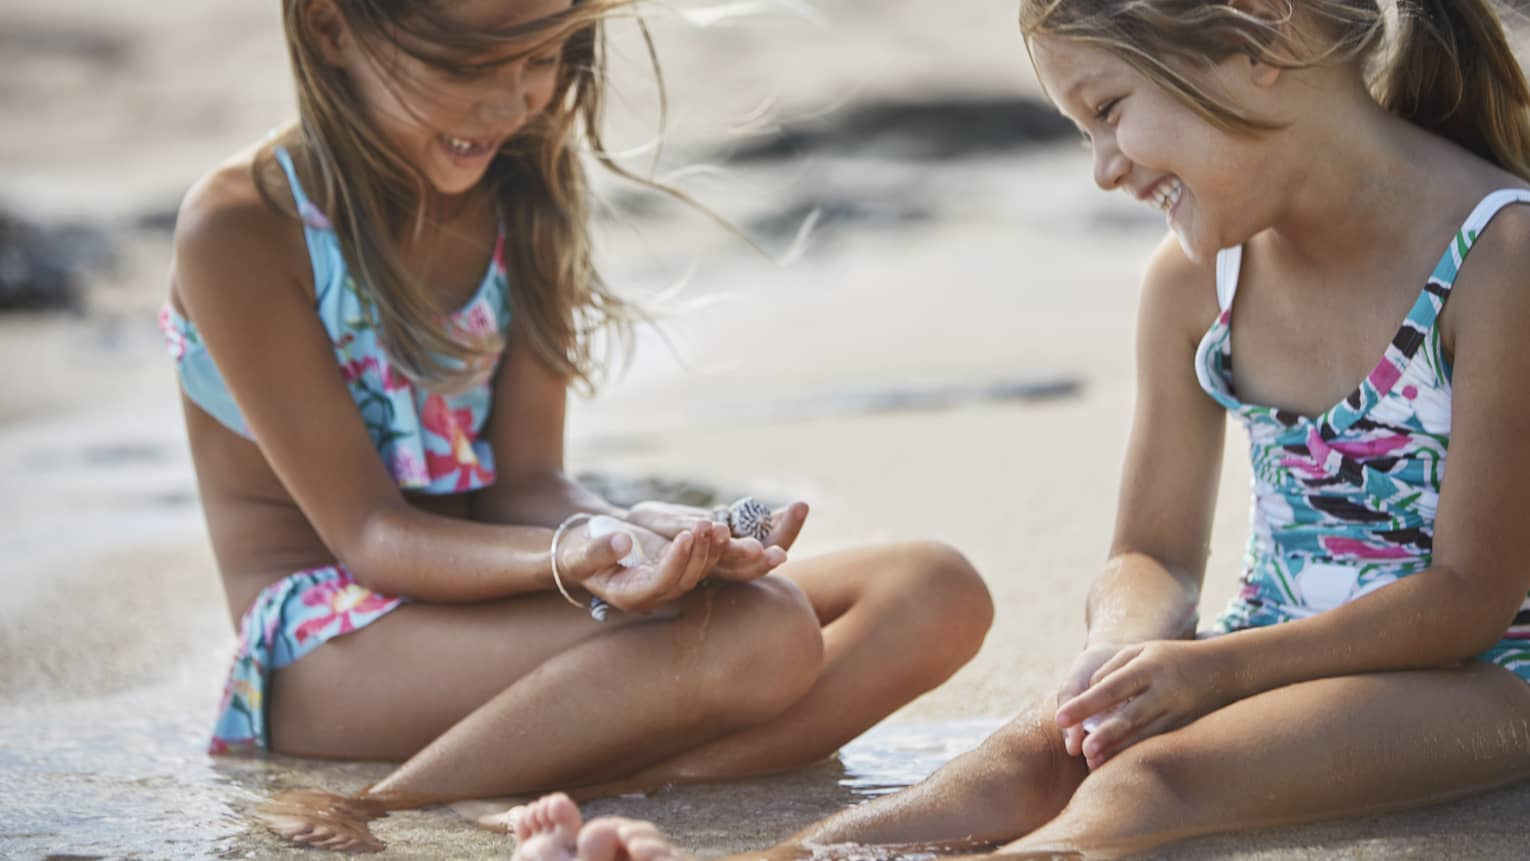 Two smiling young girls in swimsuits sit on sandy beach, look at seashells in hand